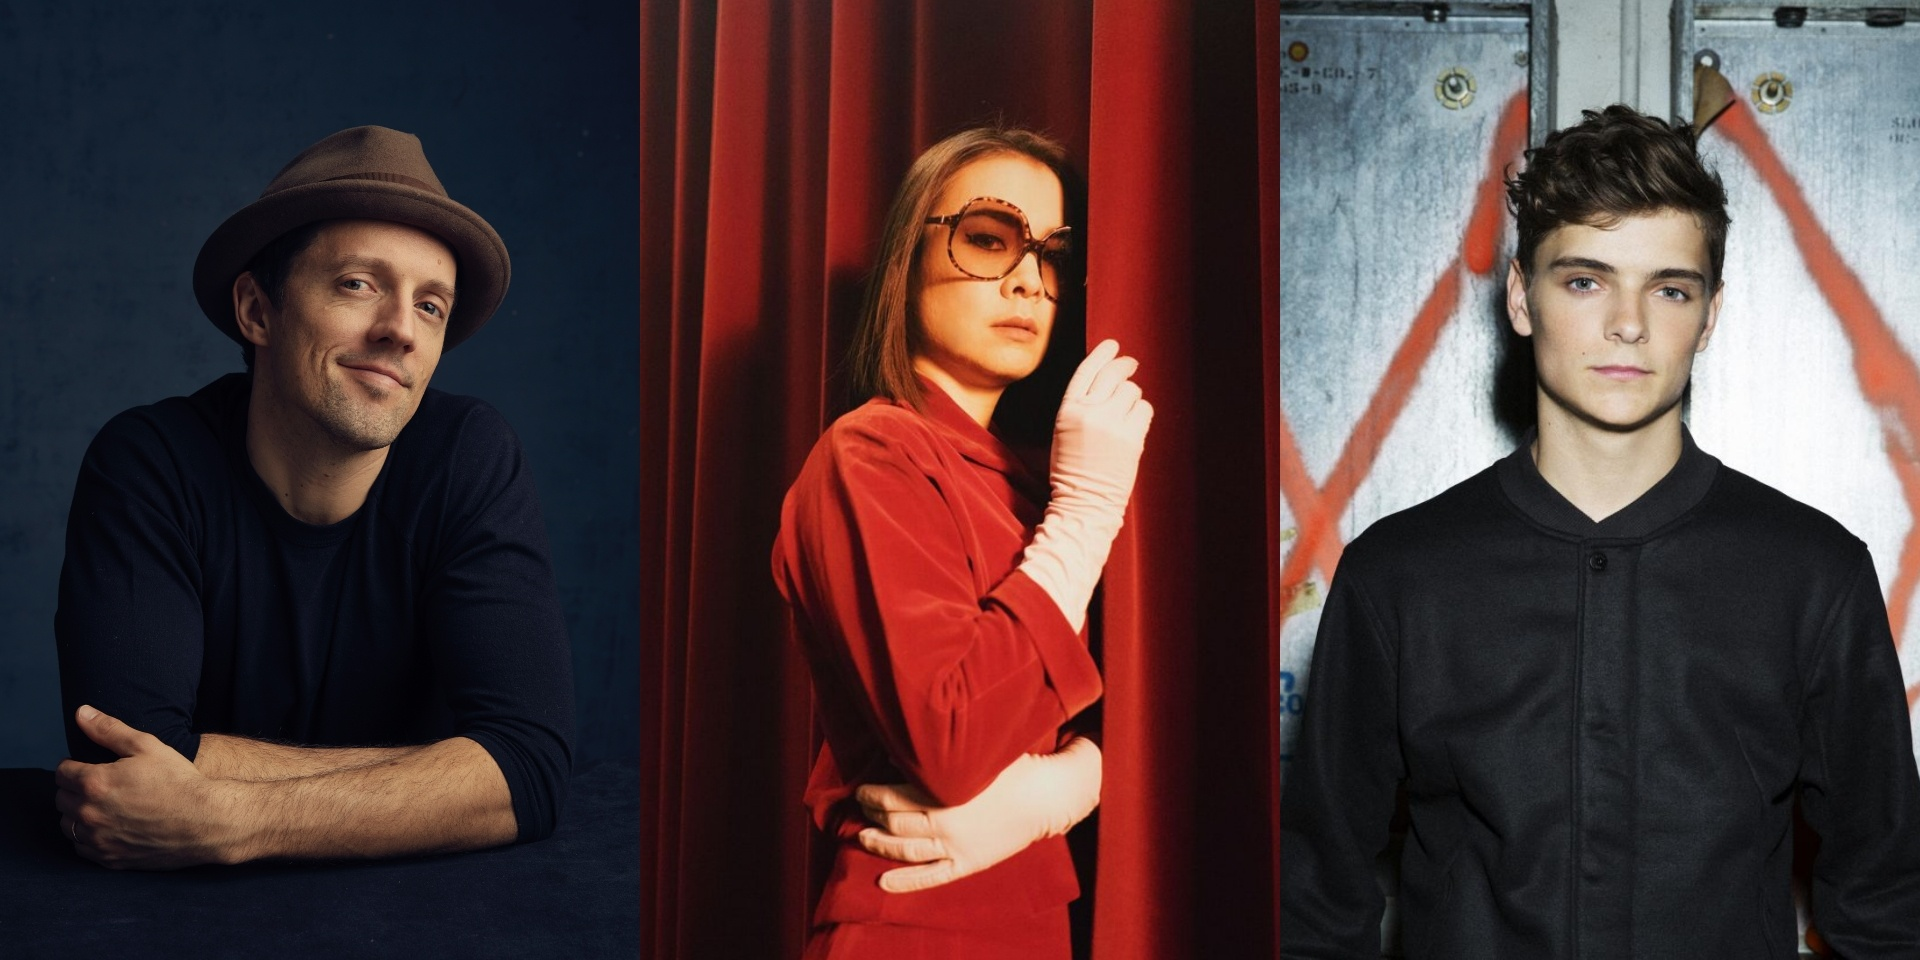 Fuji Rock Festival 2019 announces full lineup – Jason Mraz, Mitski, Martin Garrix and more confirmed